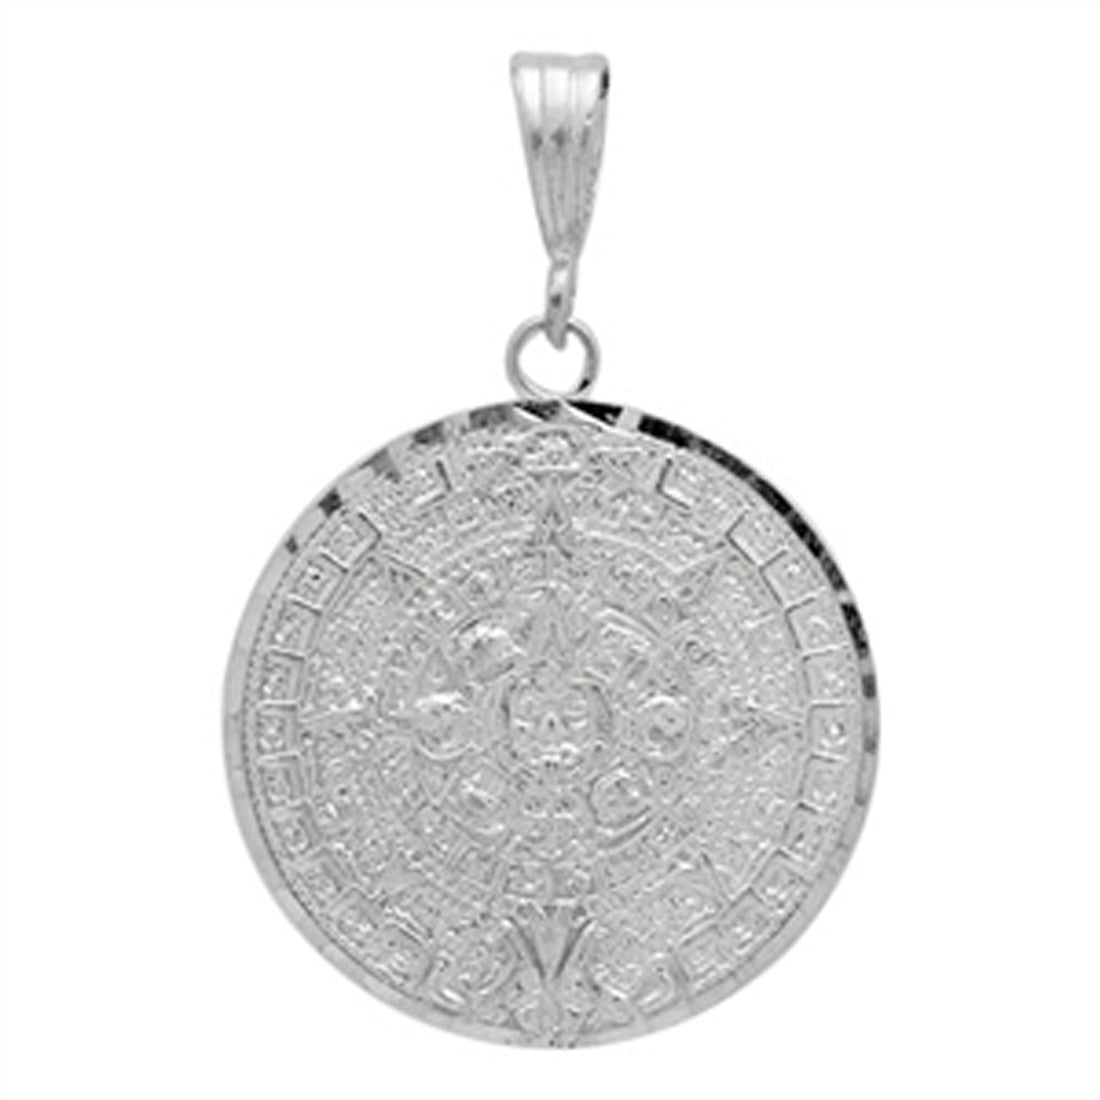 Aztec Calendar Pendant 925 Sterling Silver Diamond Cut charm 28mm Long-Blue Apple Jewelary